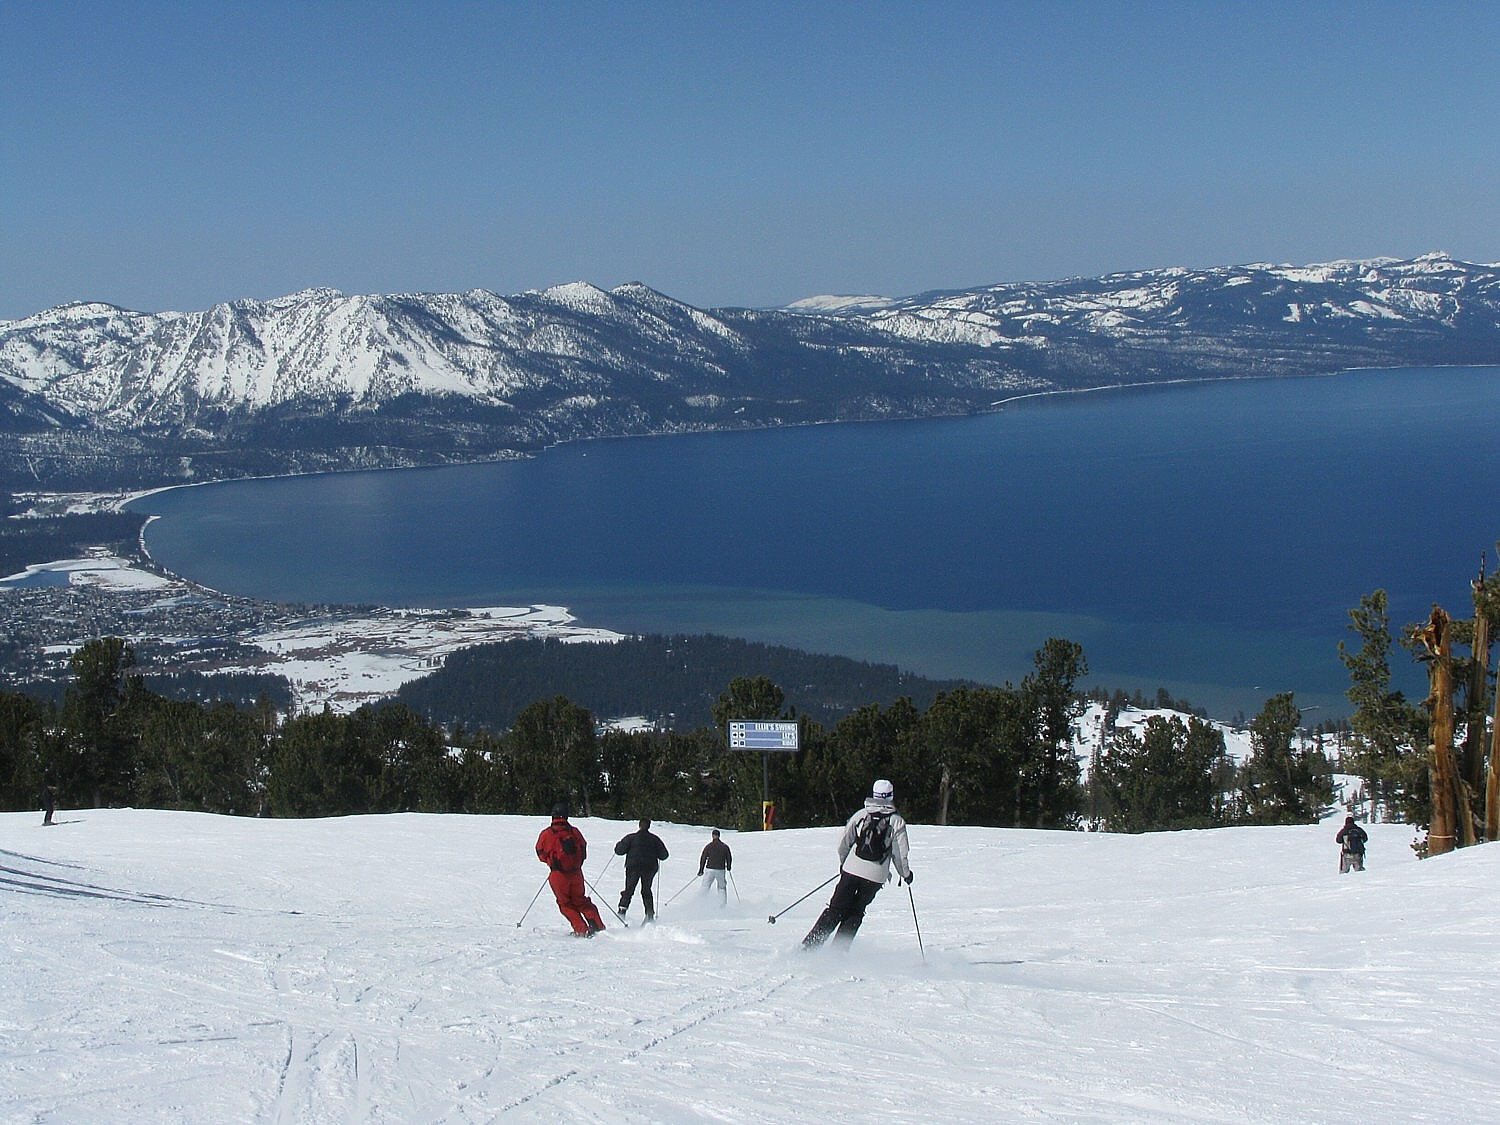 Heavenly Mountain at Lake Tahoe is part of Vail Resorts' Epic Pass which also gives access to resorts in Australia, France, Italy, Austria and Switzerland © 2016 Karen Rubin/goingplacesfarandnear.com